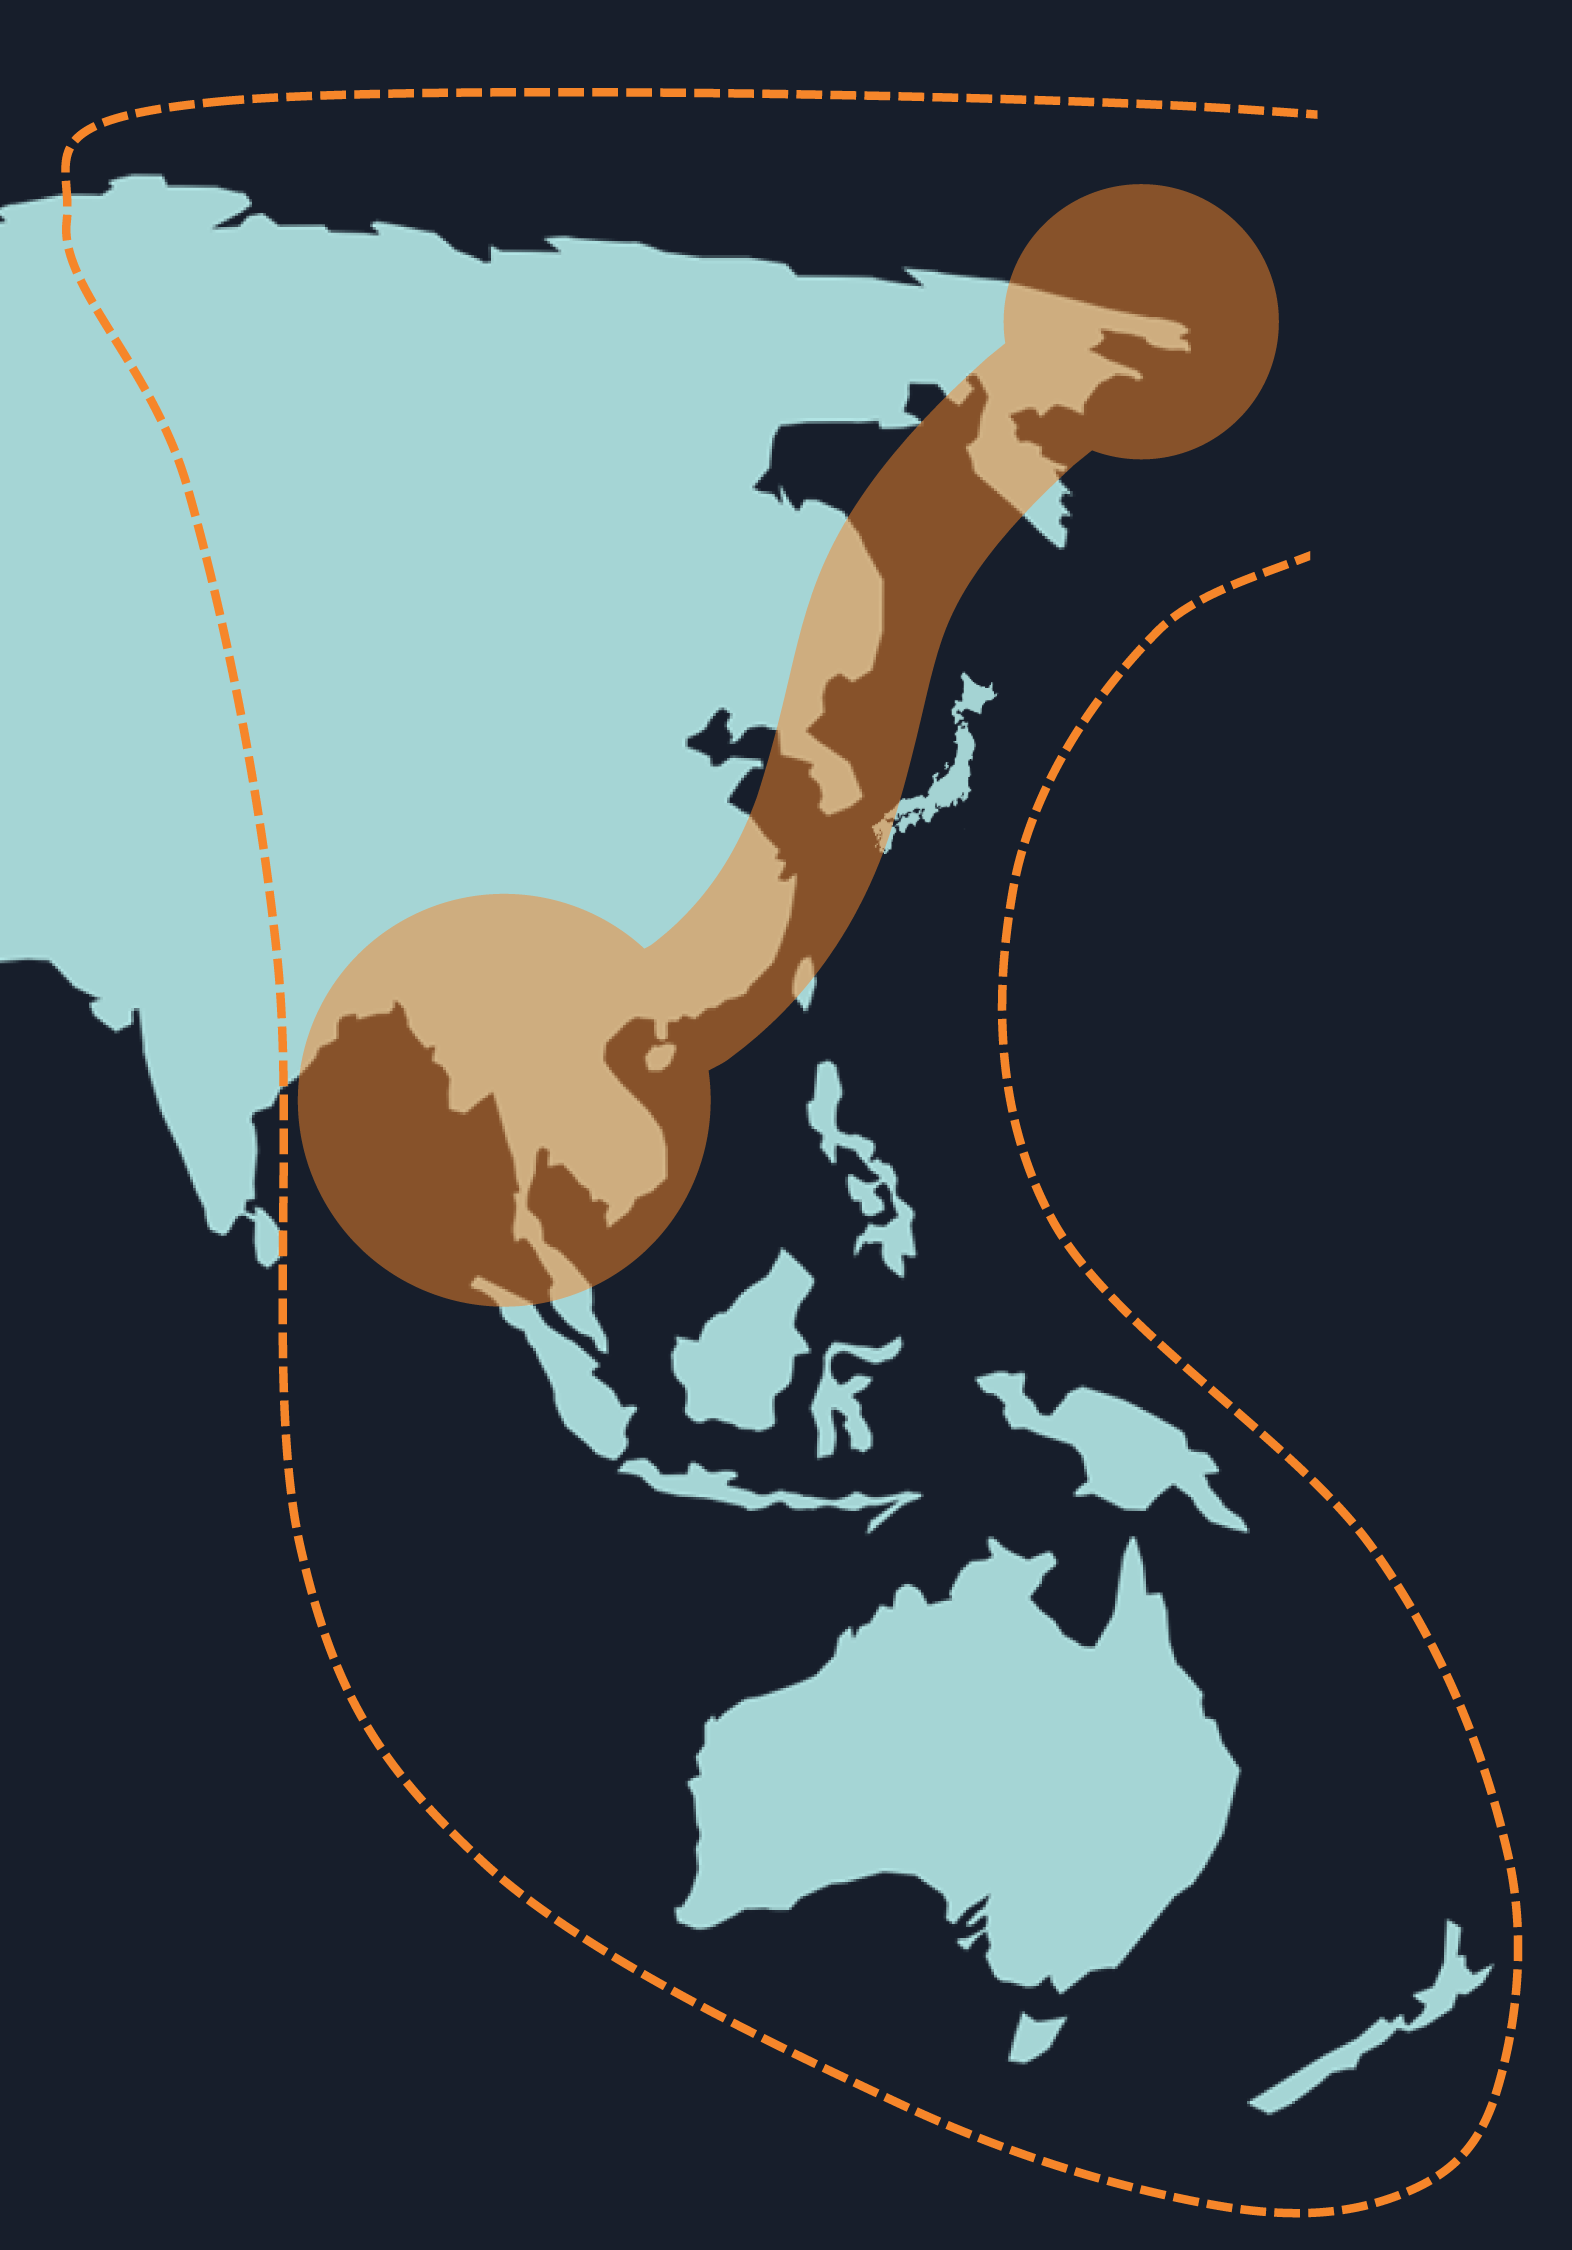 """The East Asian - Australasian """"Flyway"""" (Credit WWT)"""